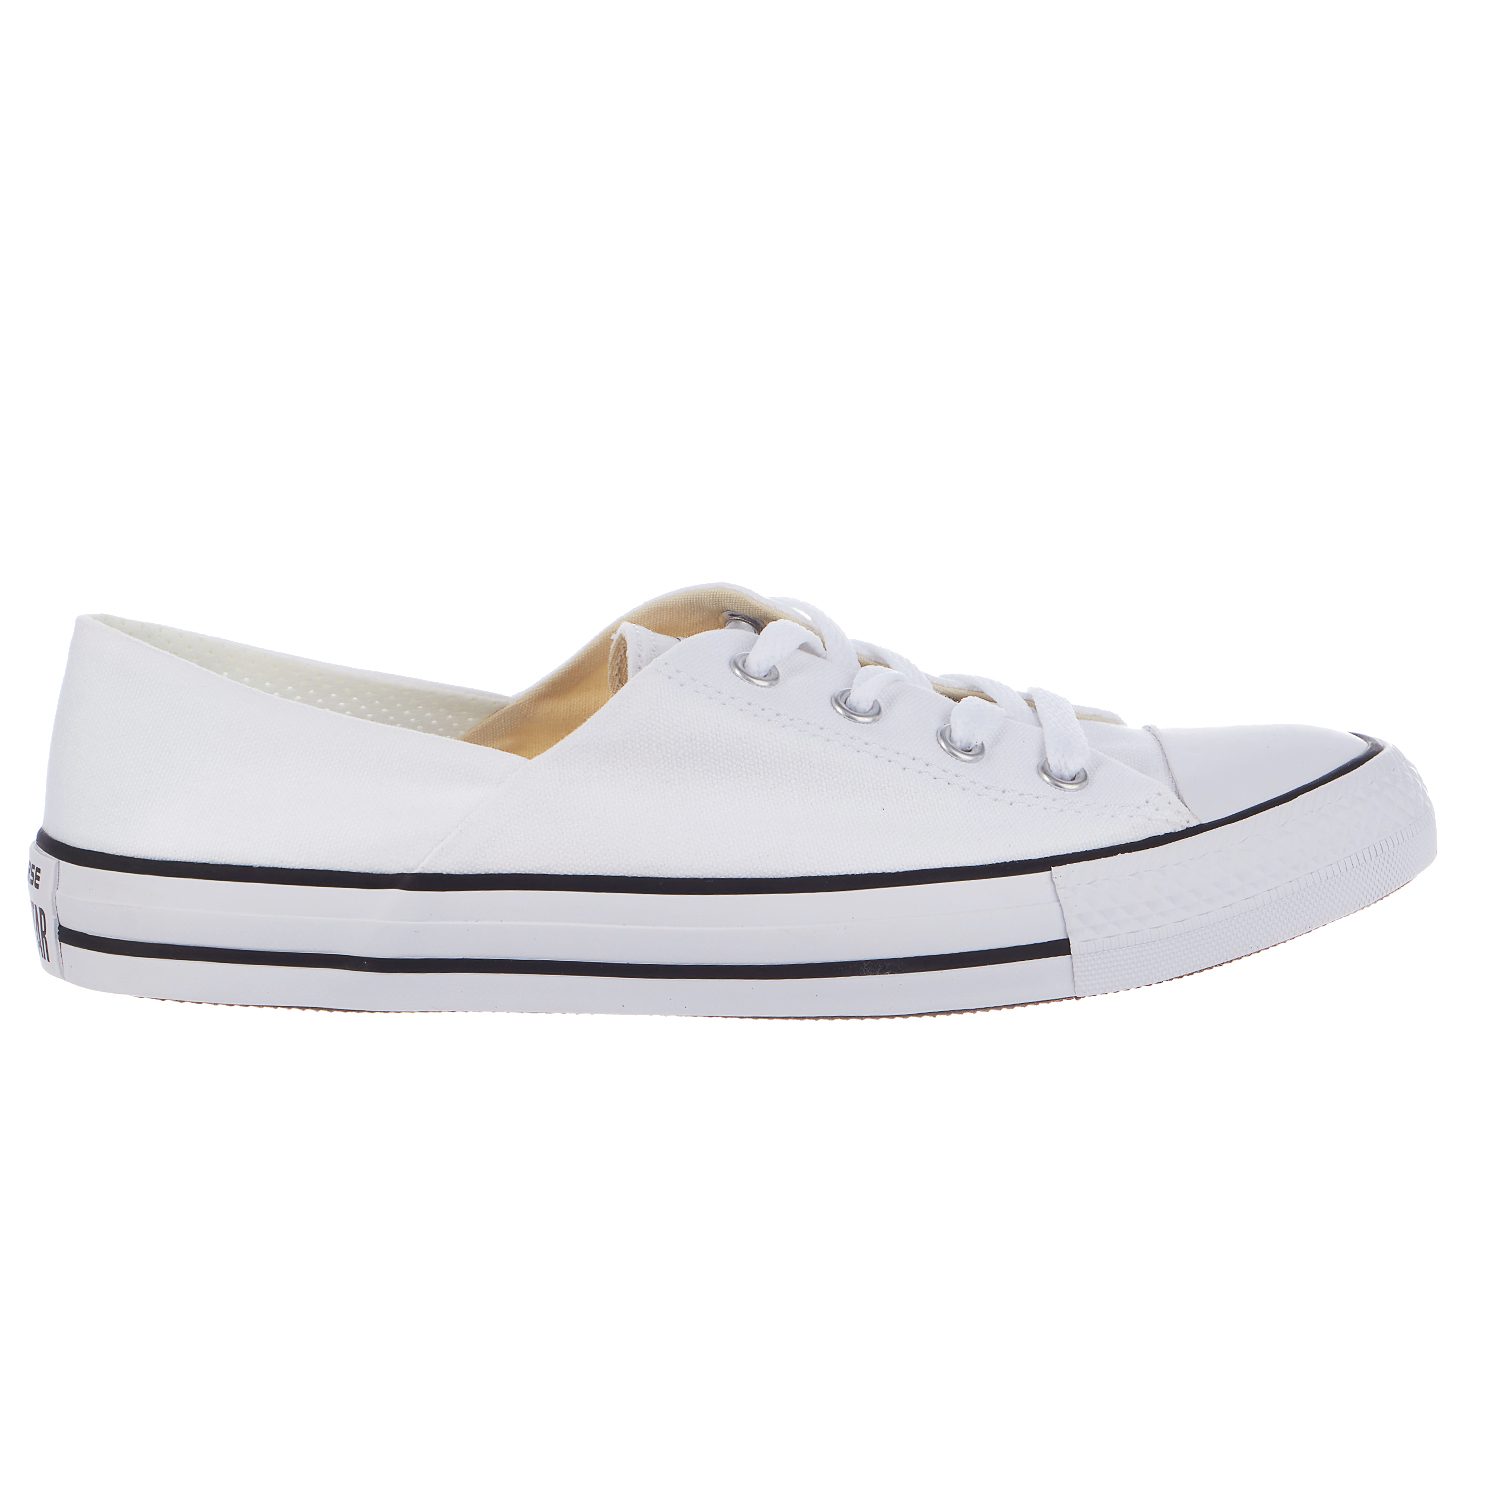 076a7010a5e6c7 Converse Chuck Taylor All Star CoralOx Fashion Sneaker Shoe - Womens ...